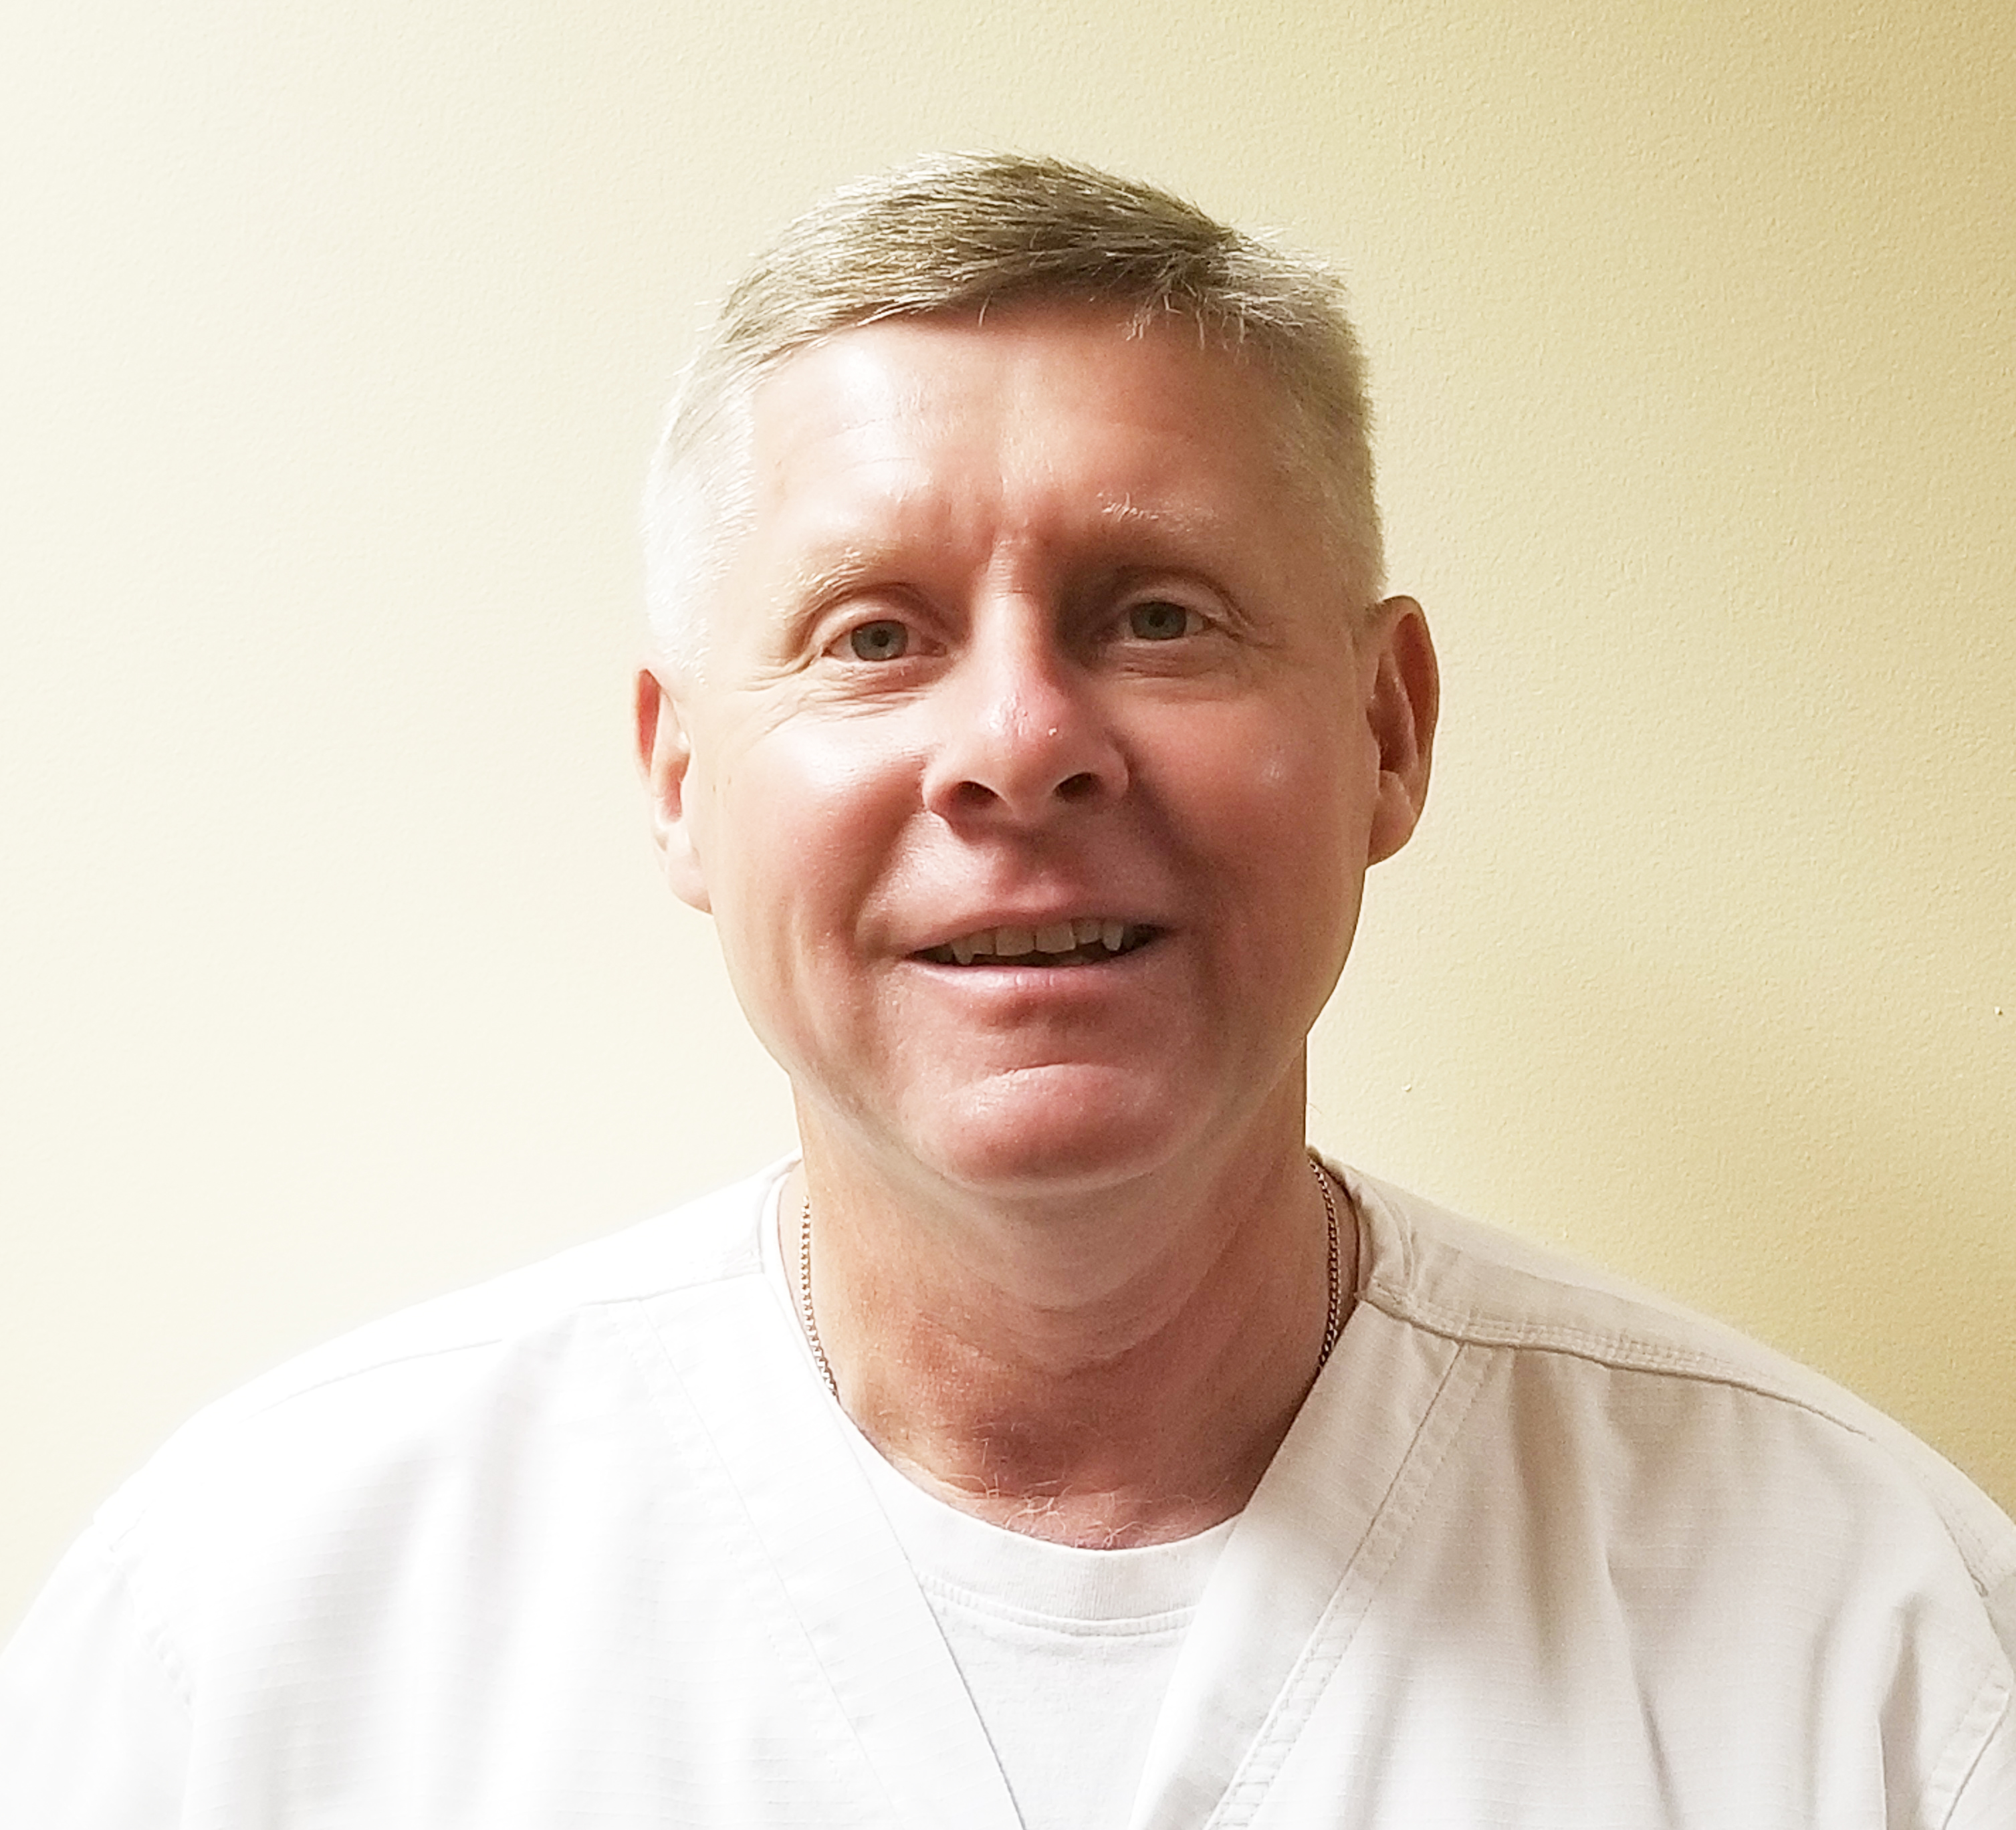 Gerald Grass, MSN, RN photograph